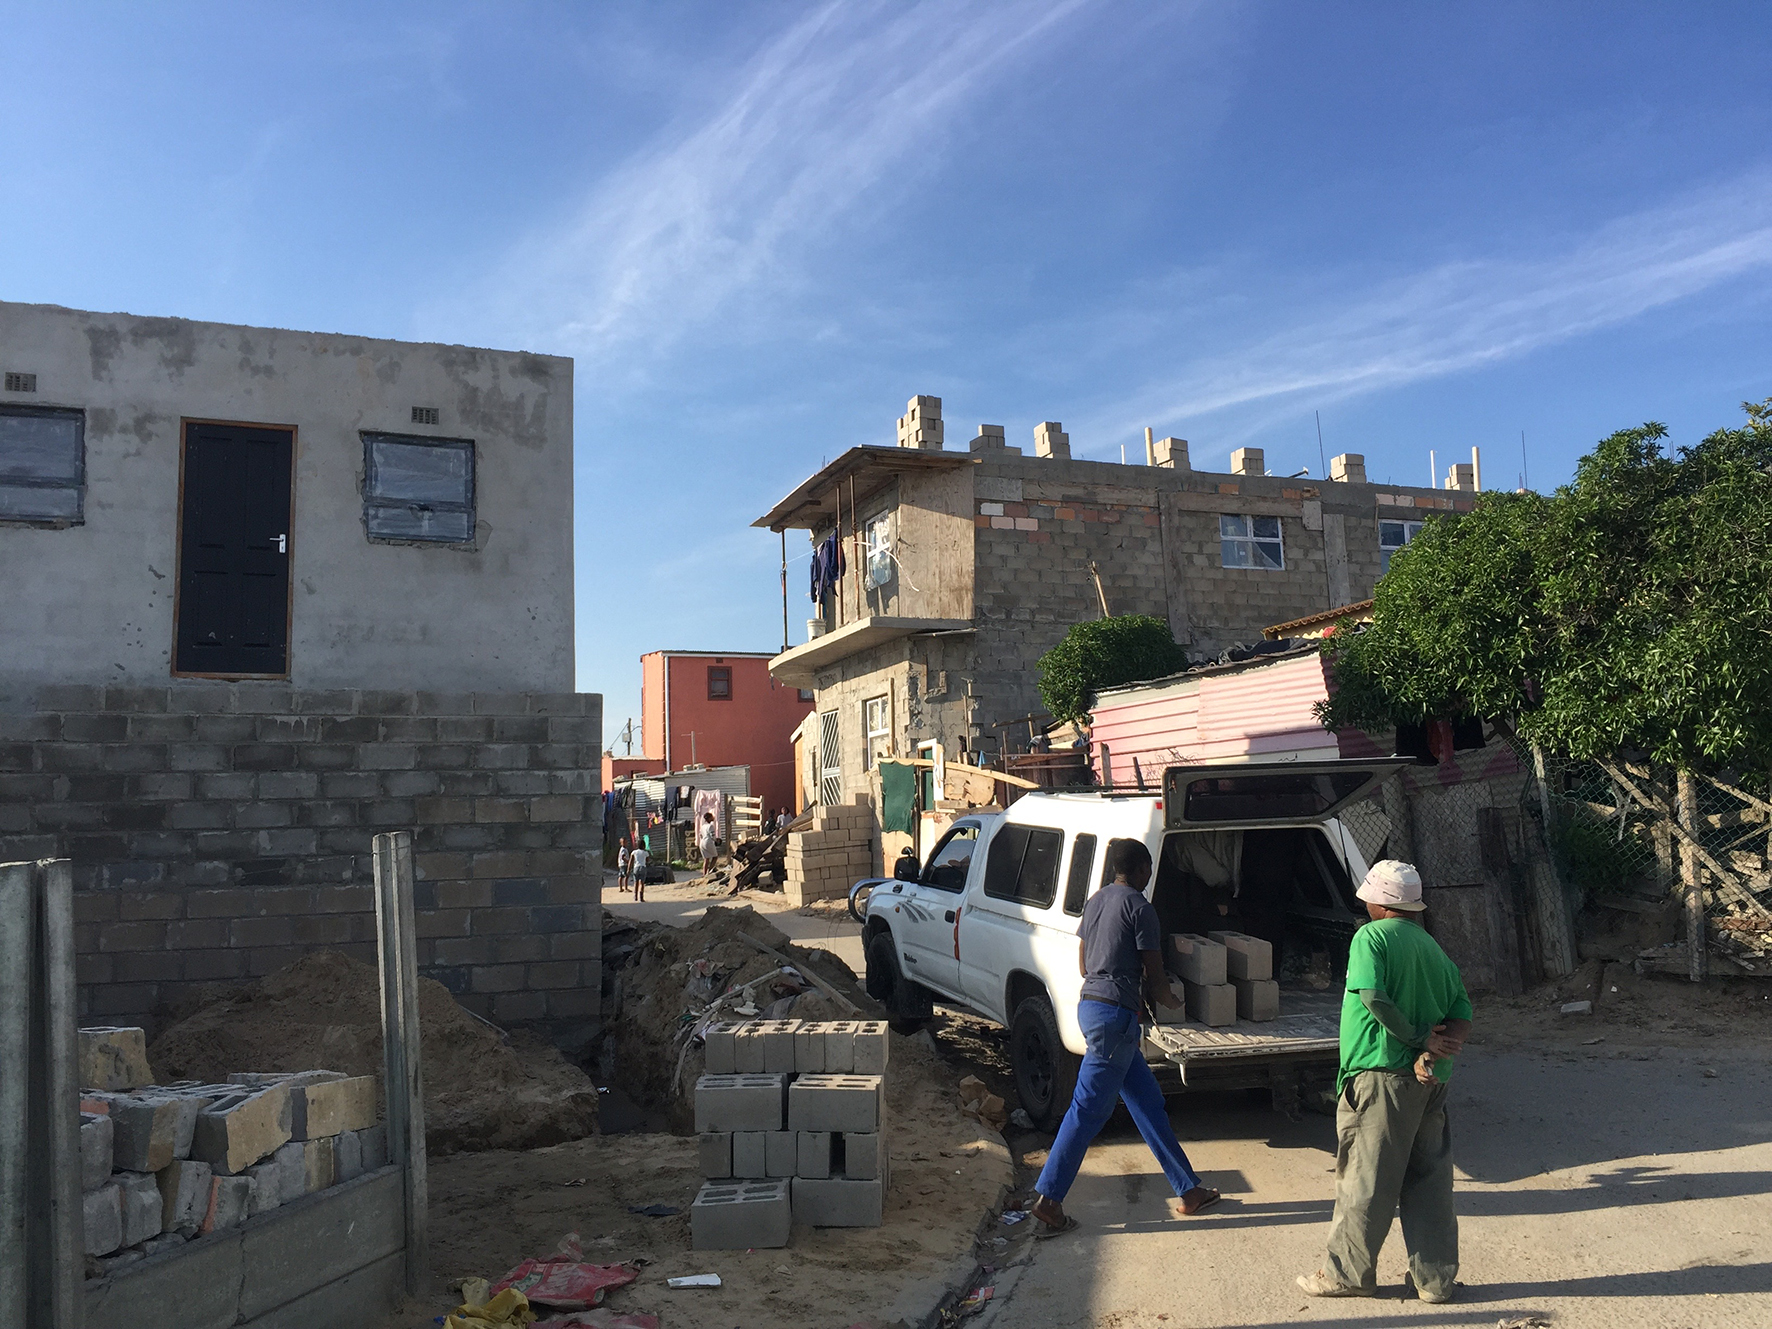 City Of Cape Town: City Of Cape Town Clamps Down On Illegal Extensions To